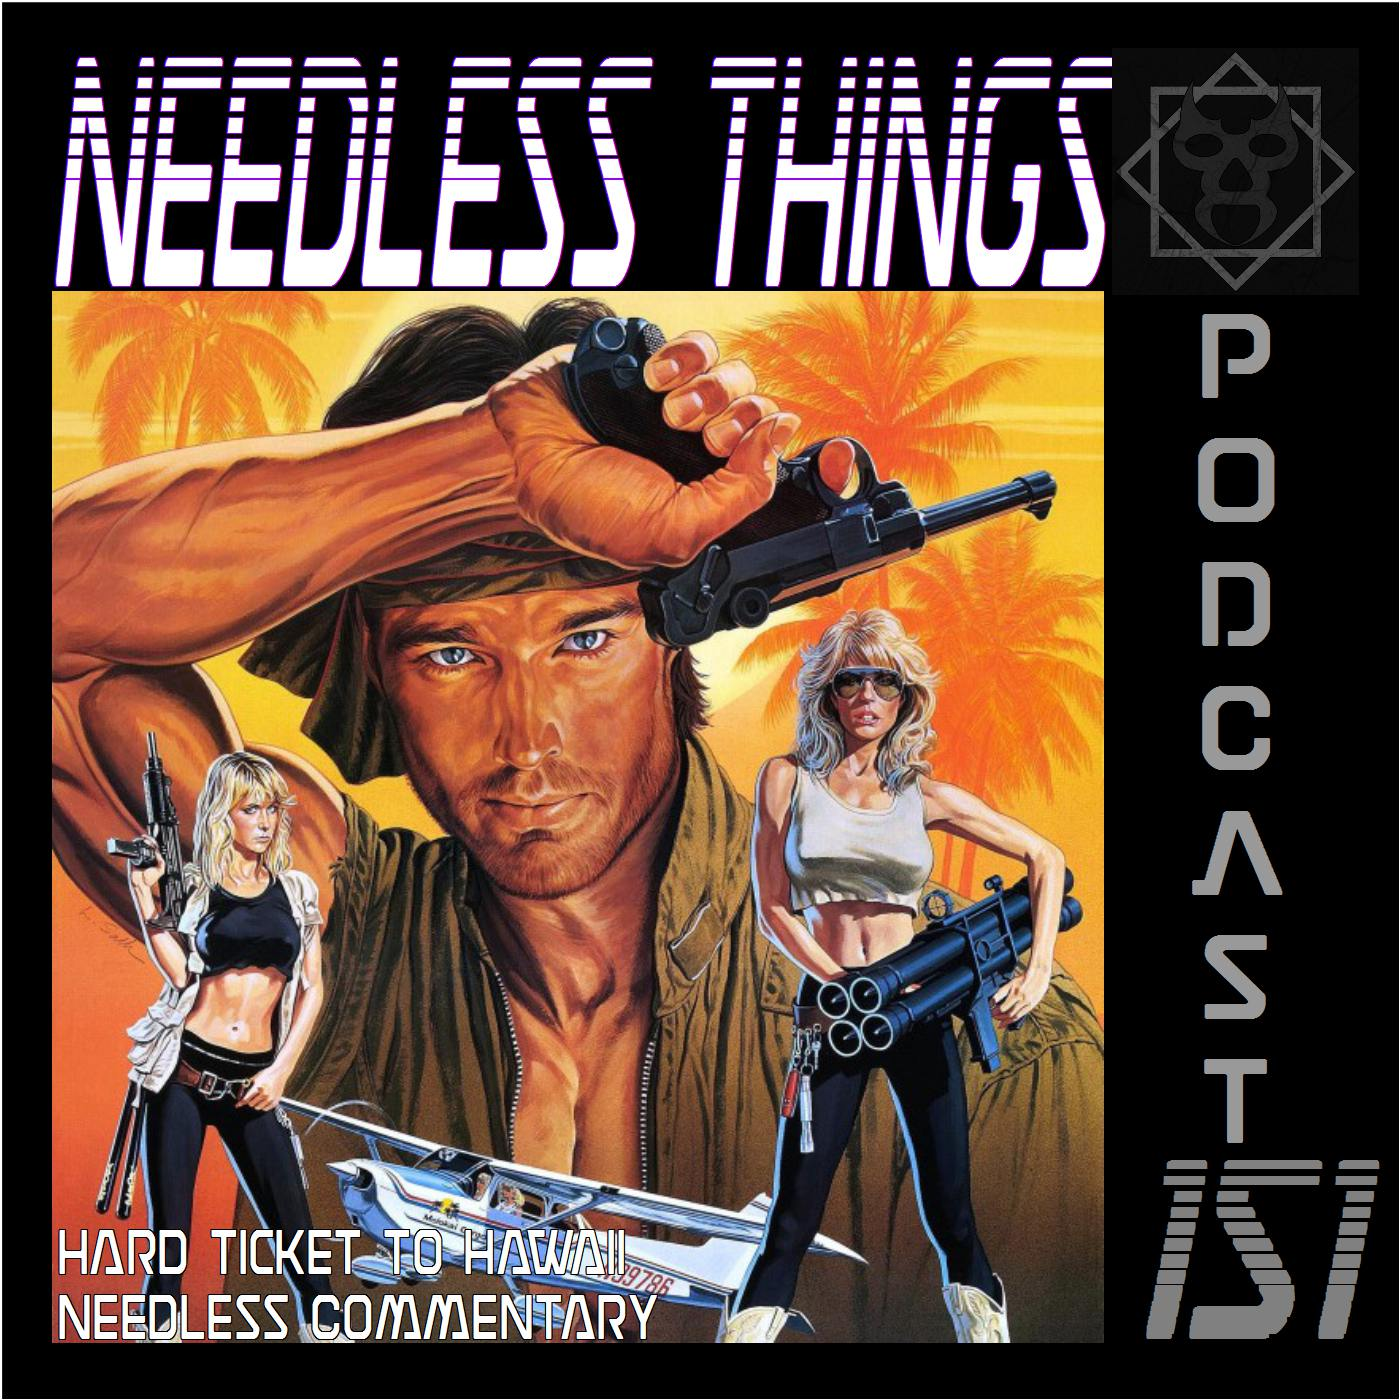 Needless Things Podcast 151: Hard Ticket to Hawaii Needless Commentary